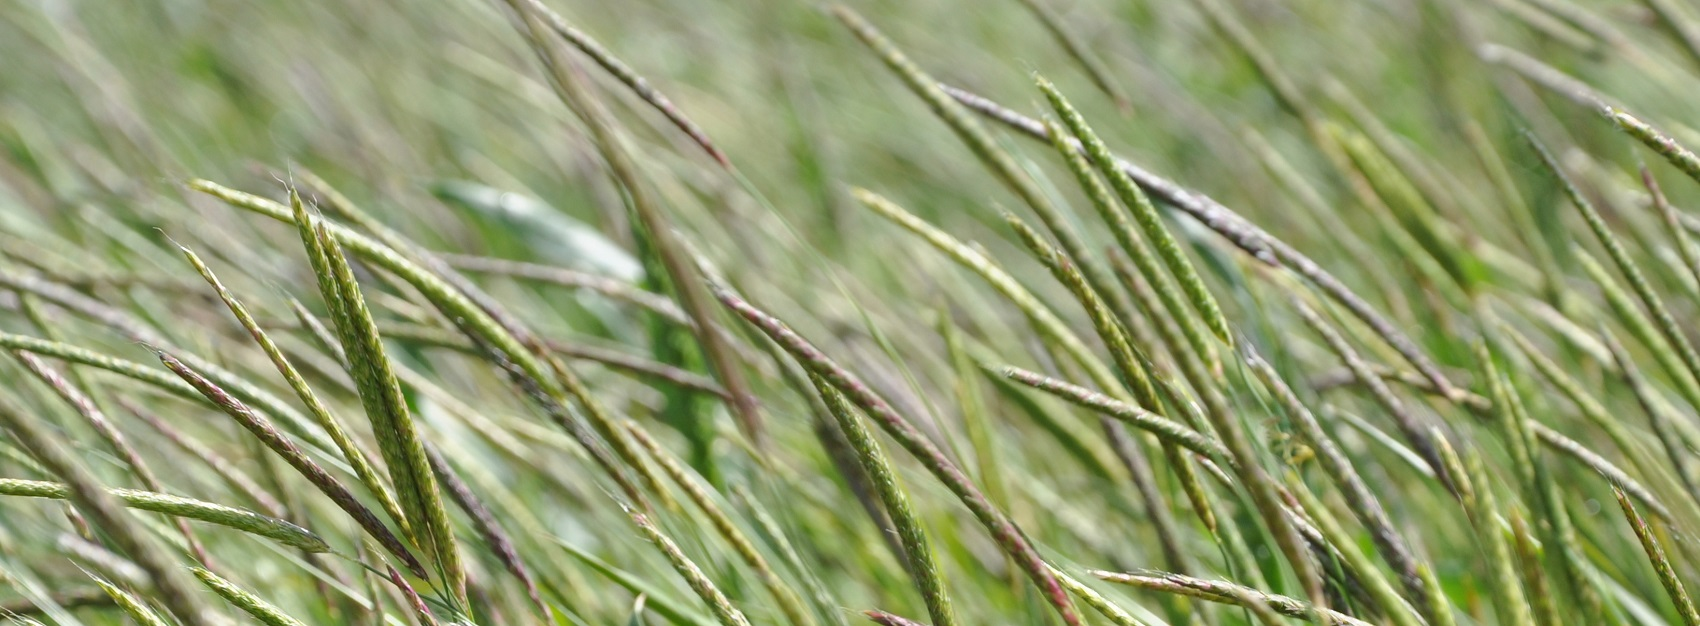 Blackgrass II- copyright Rothamsted Research